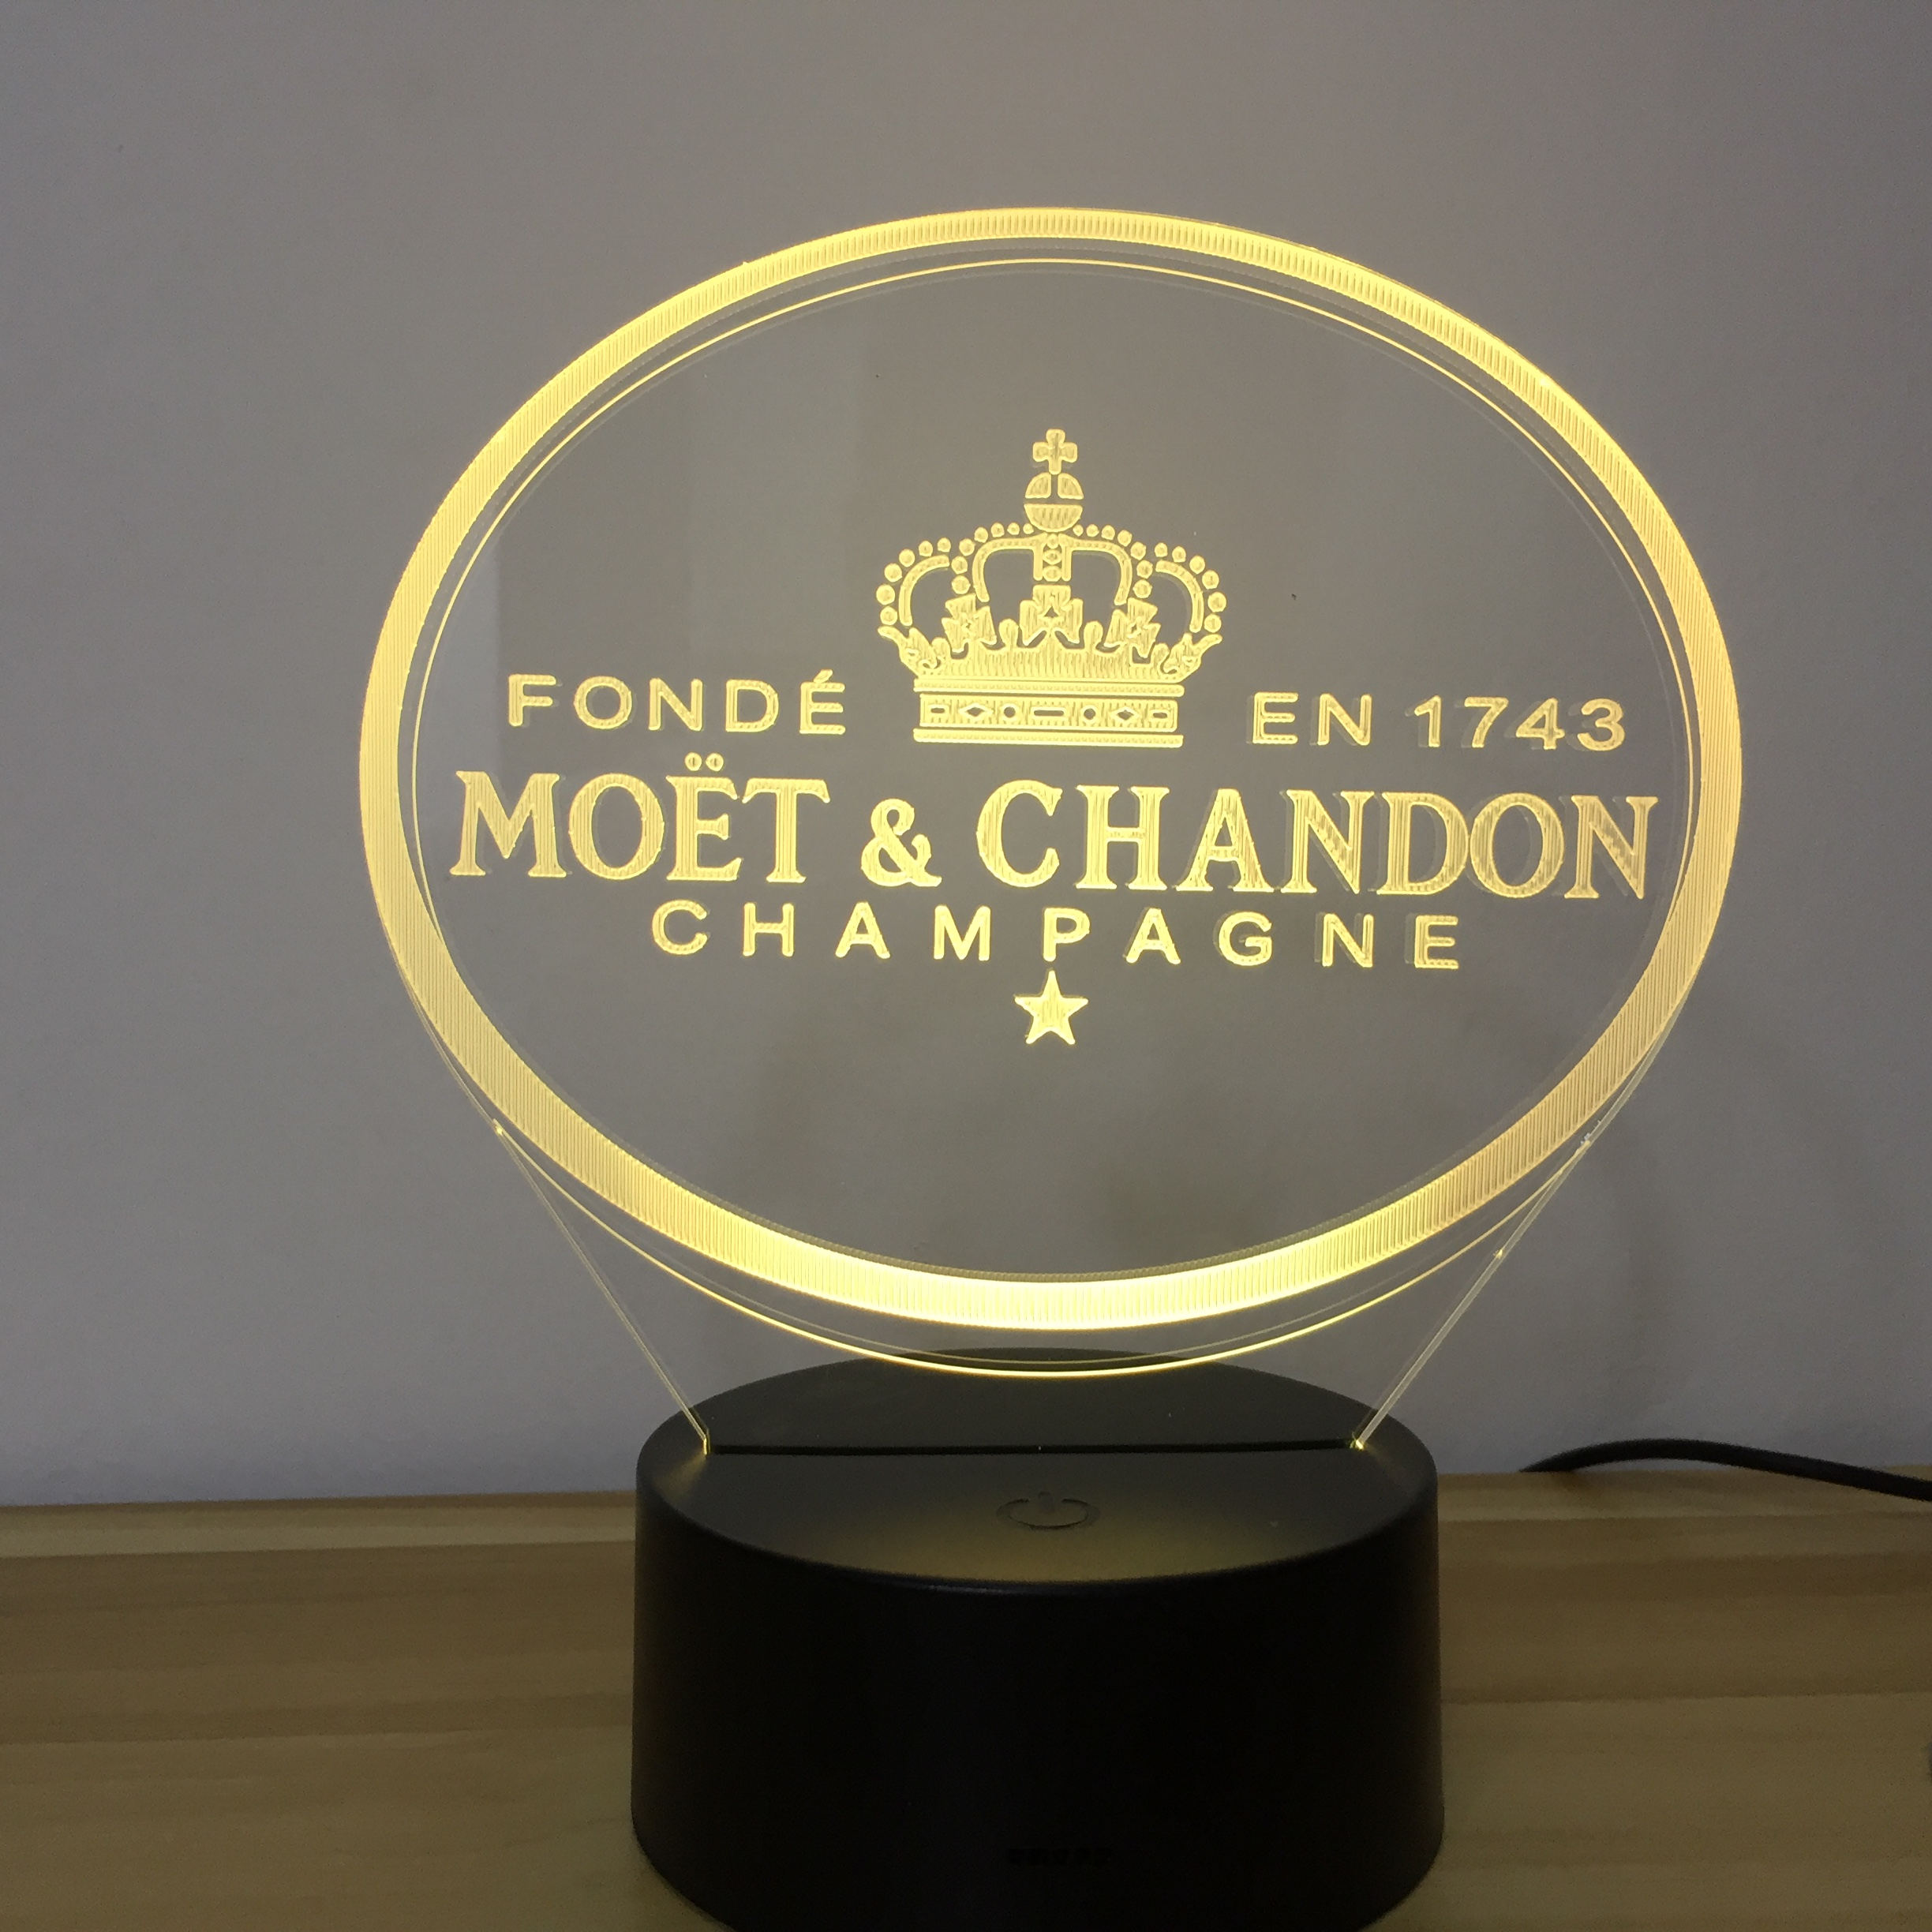 Moet Et Chandon 3D Led Night Light Lamp Gift For Clients Friend Baby Nightlight Usb Or Battery Powered Office Decorative Lamp